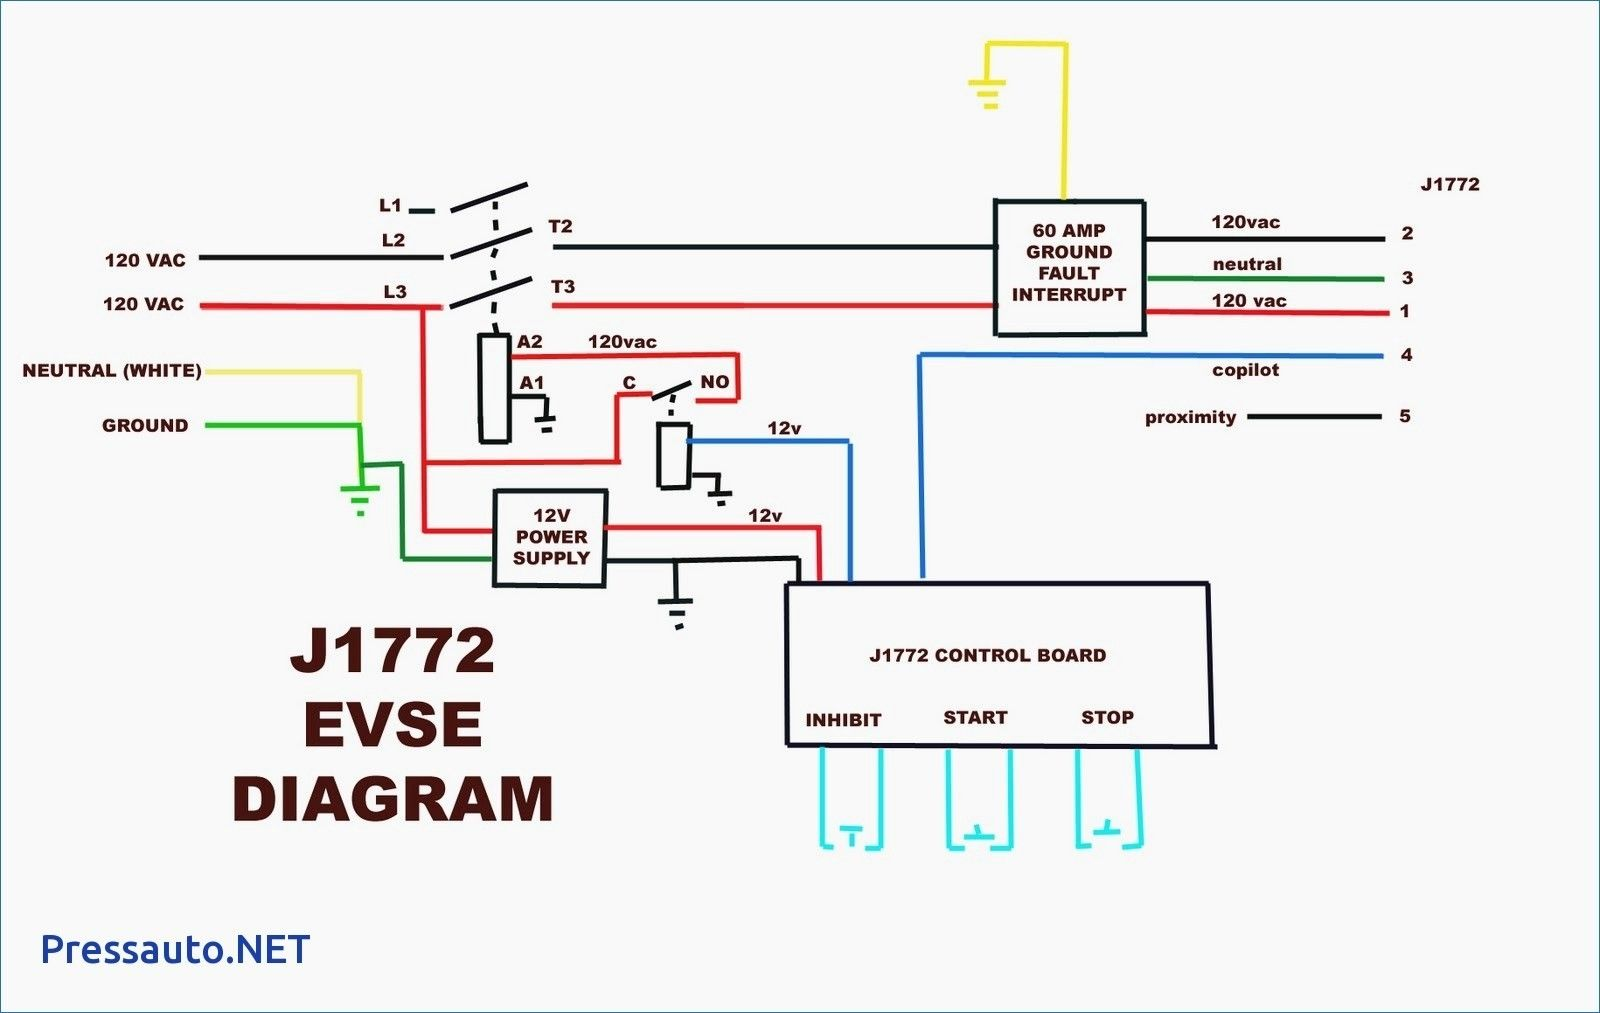 39+ Contactor and photocell wiring diagram information